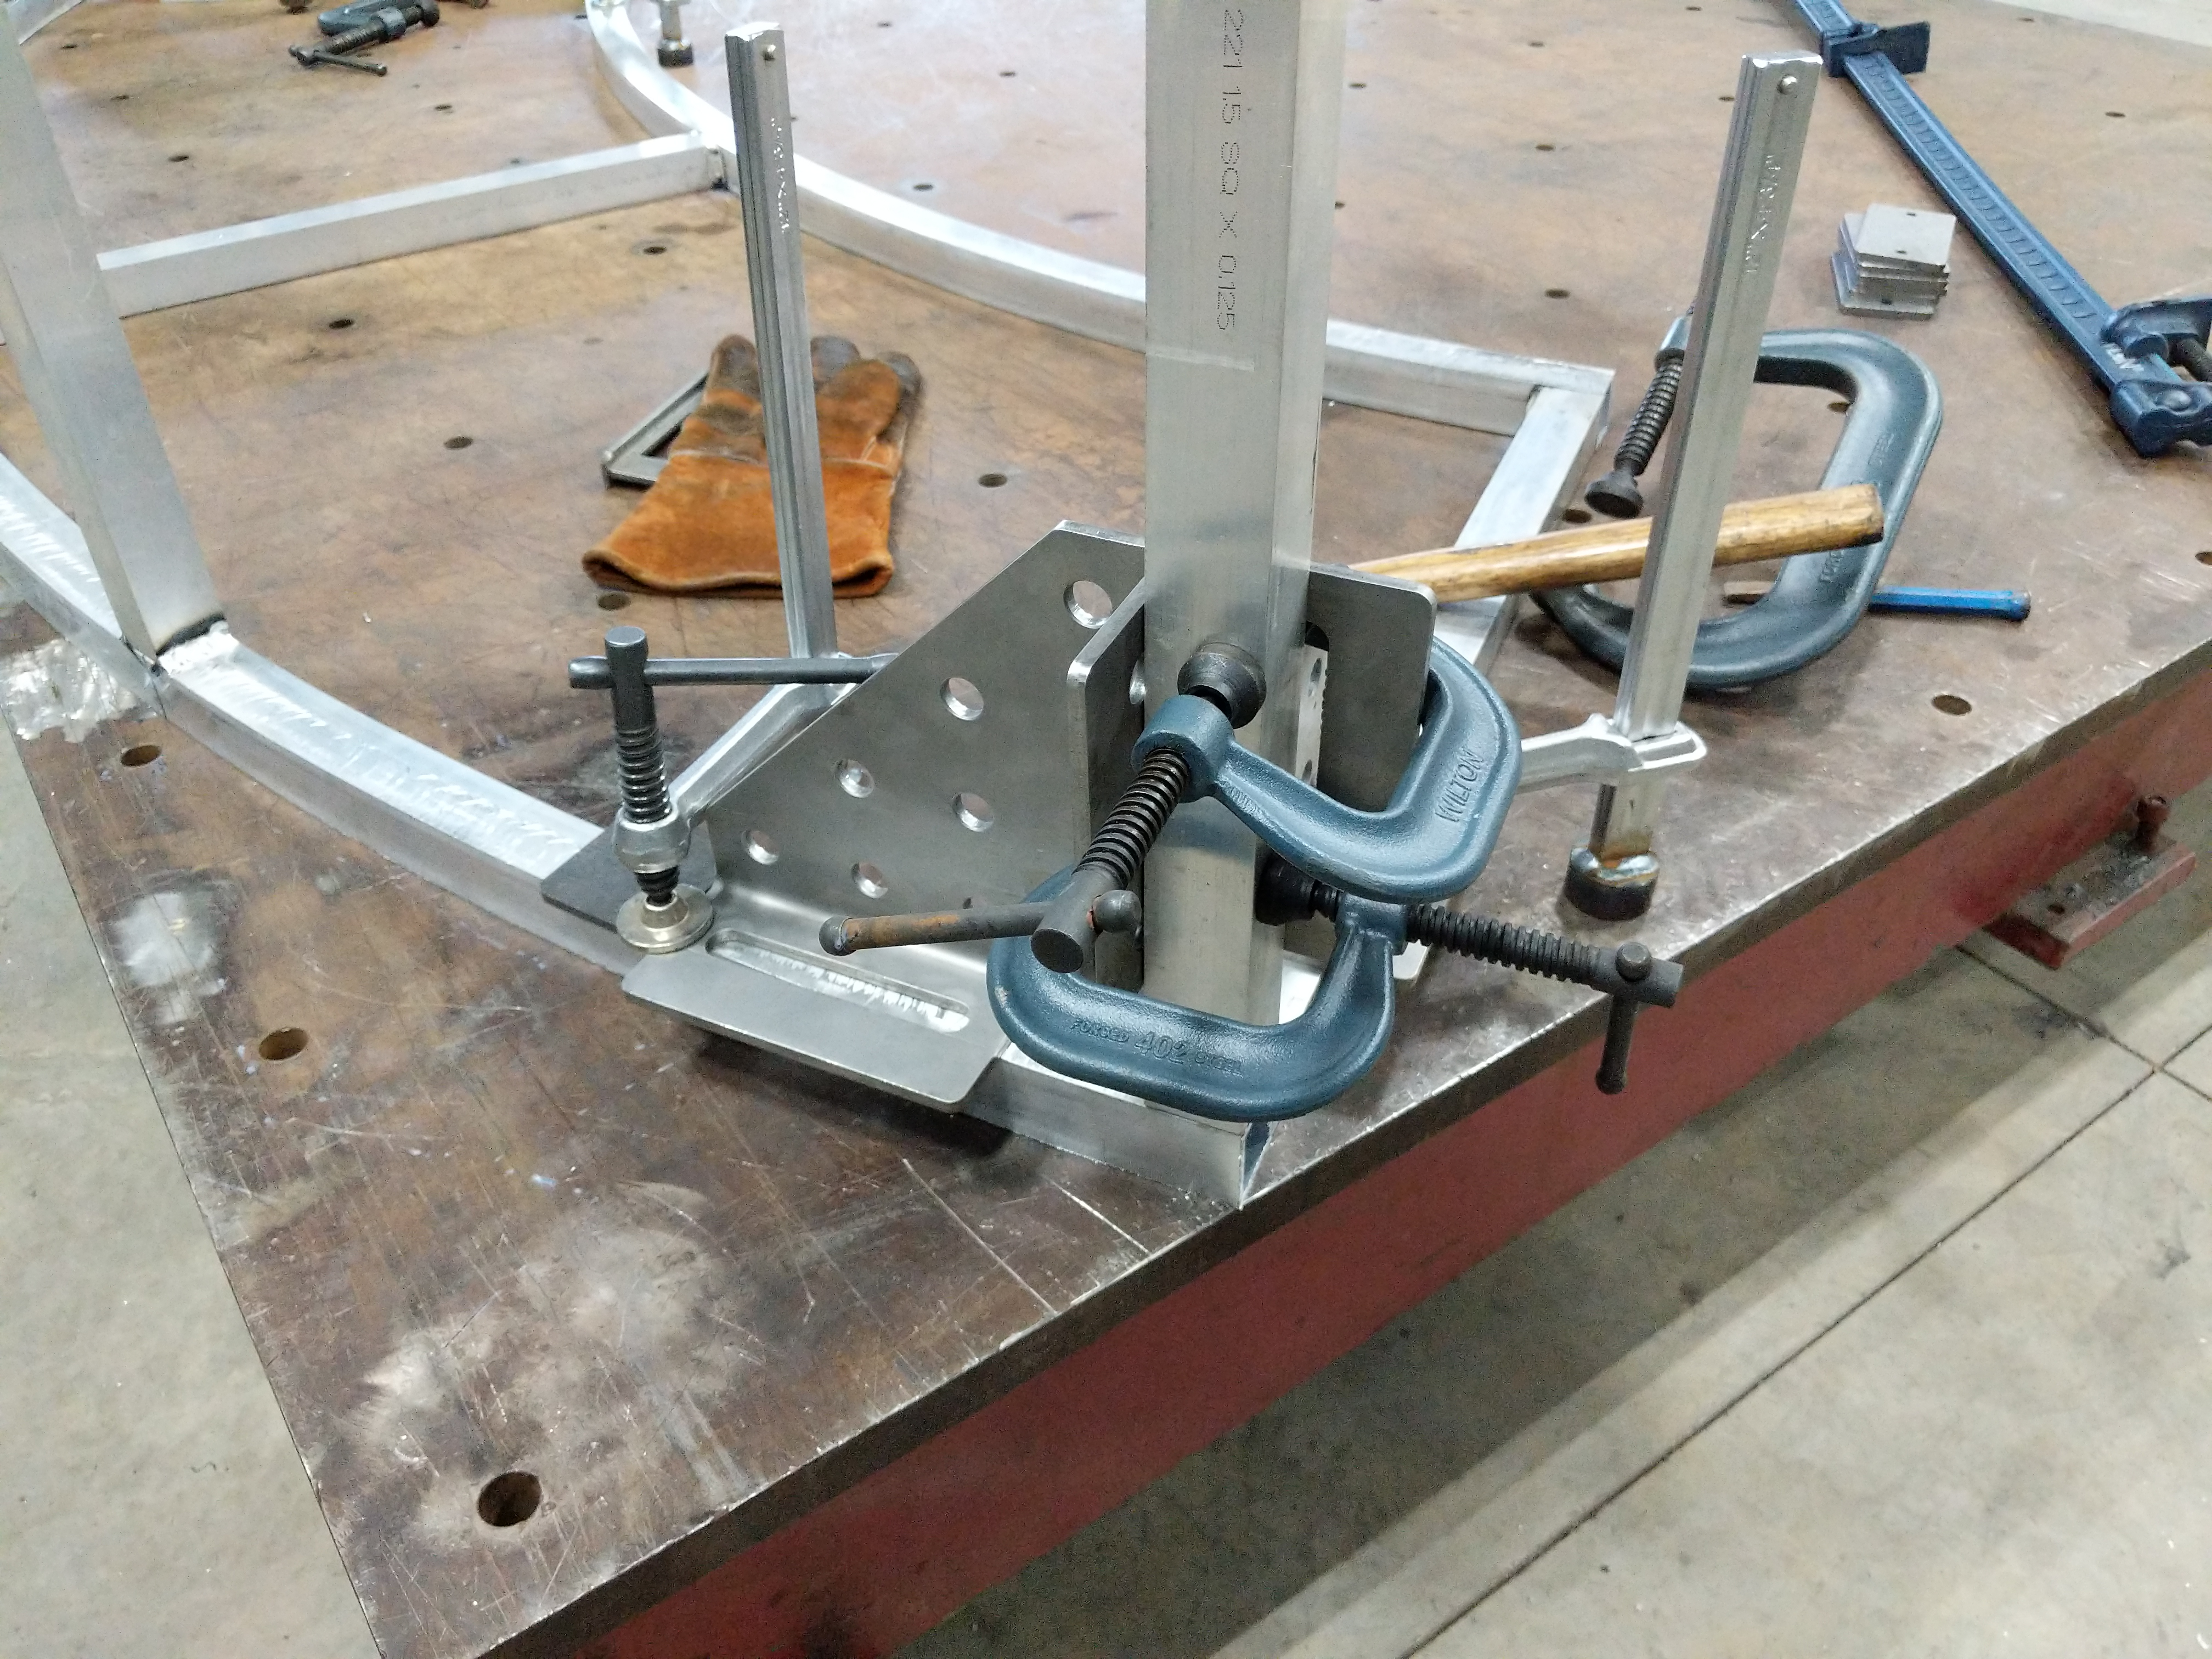 Aluminum frame being fit-up for weld